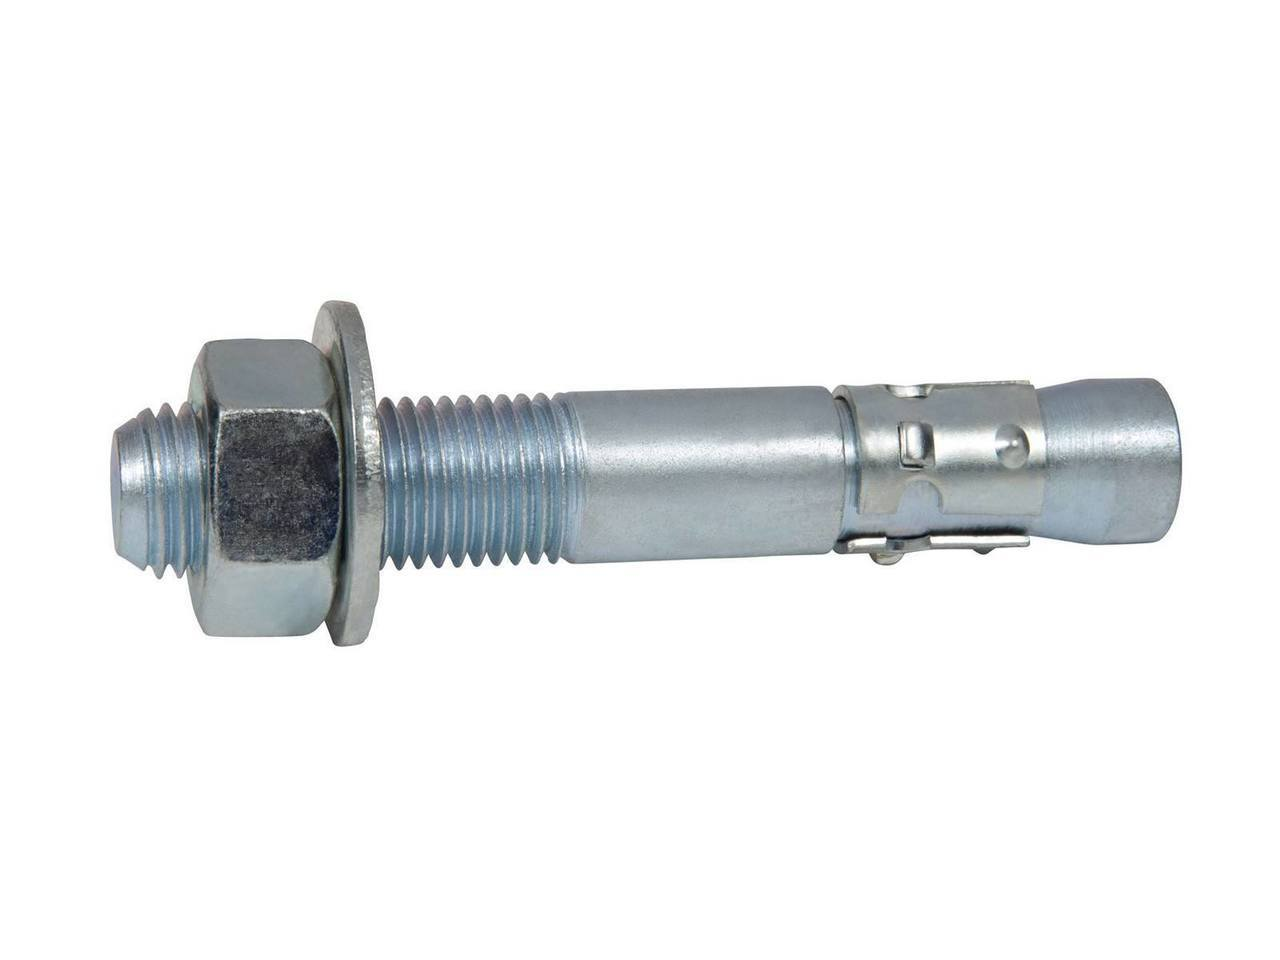 1//2 X 5-1//2 Galvanized Carriage Bolts Box of 25